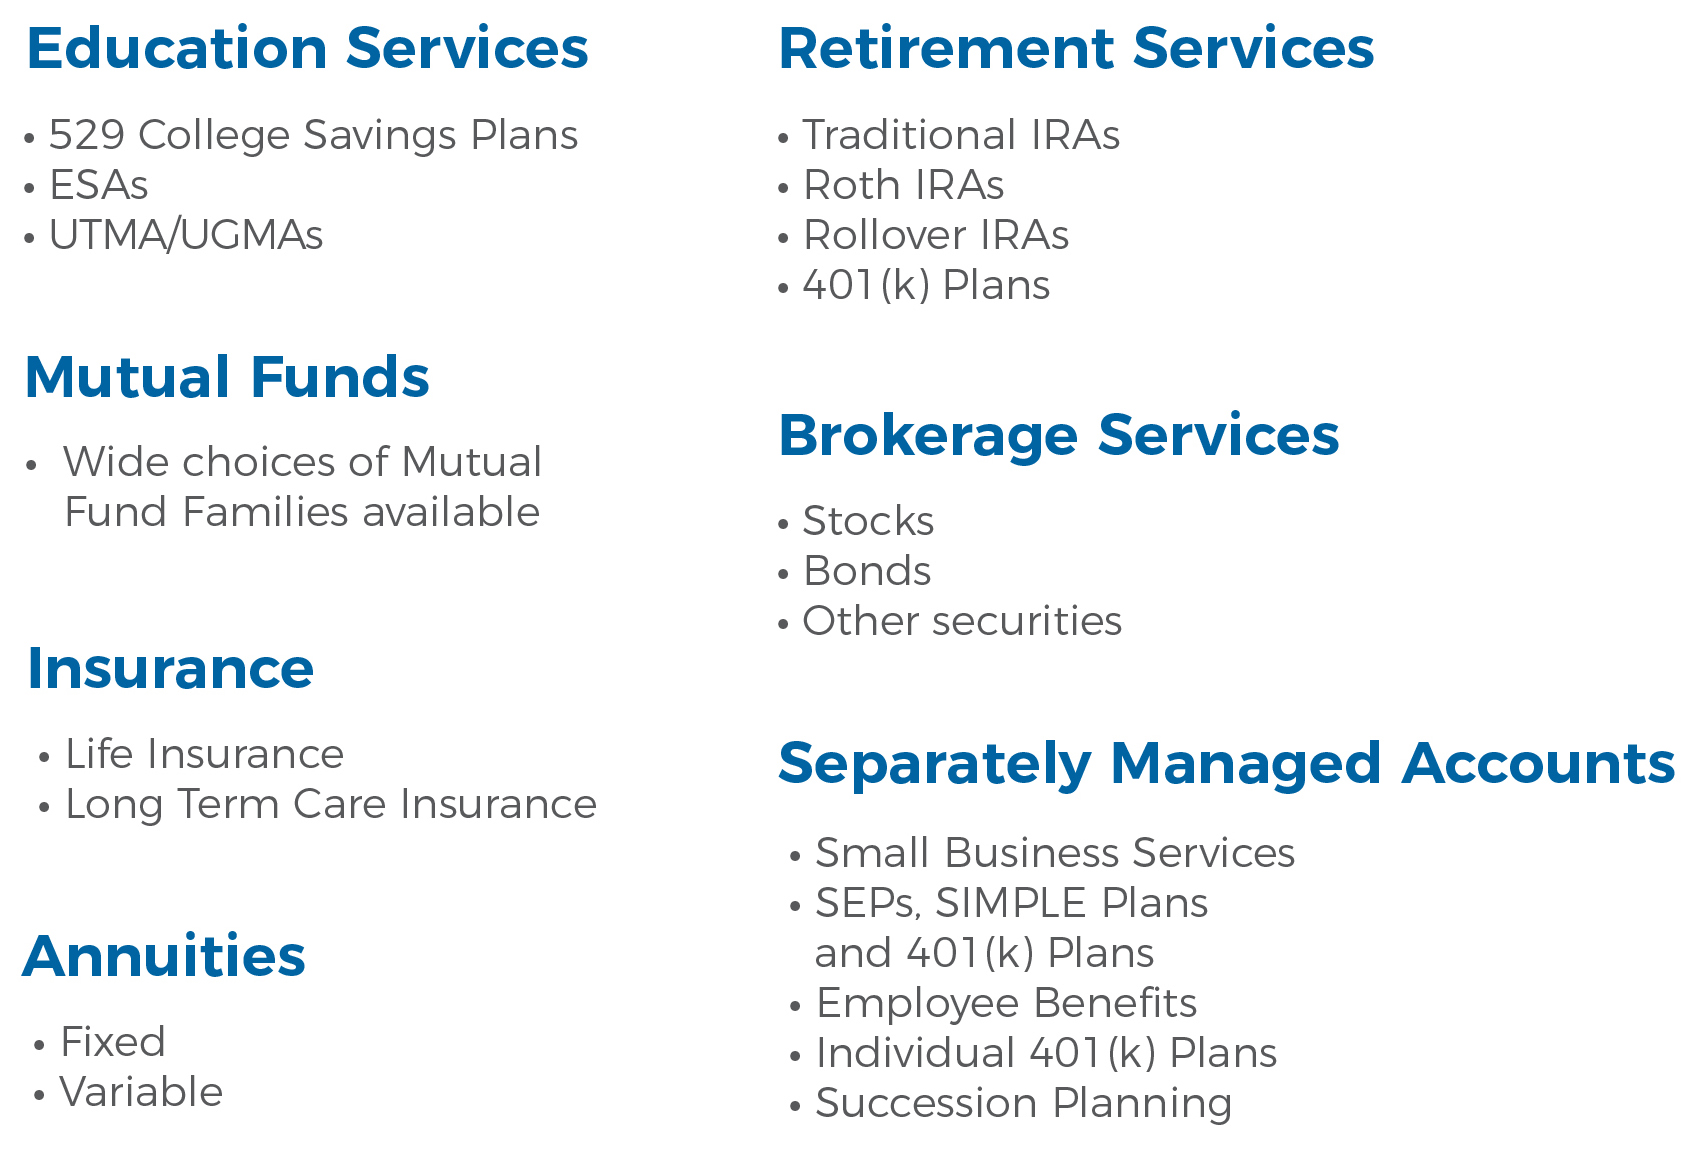 Investment Products and Services